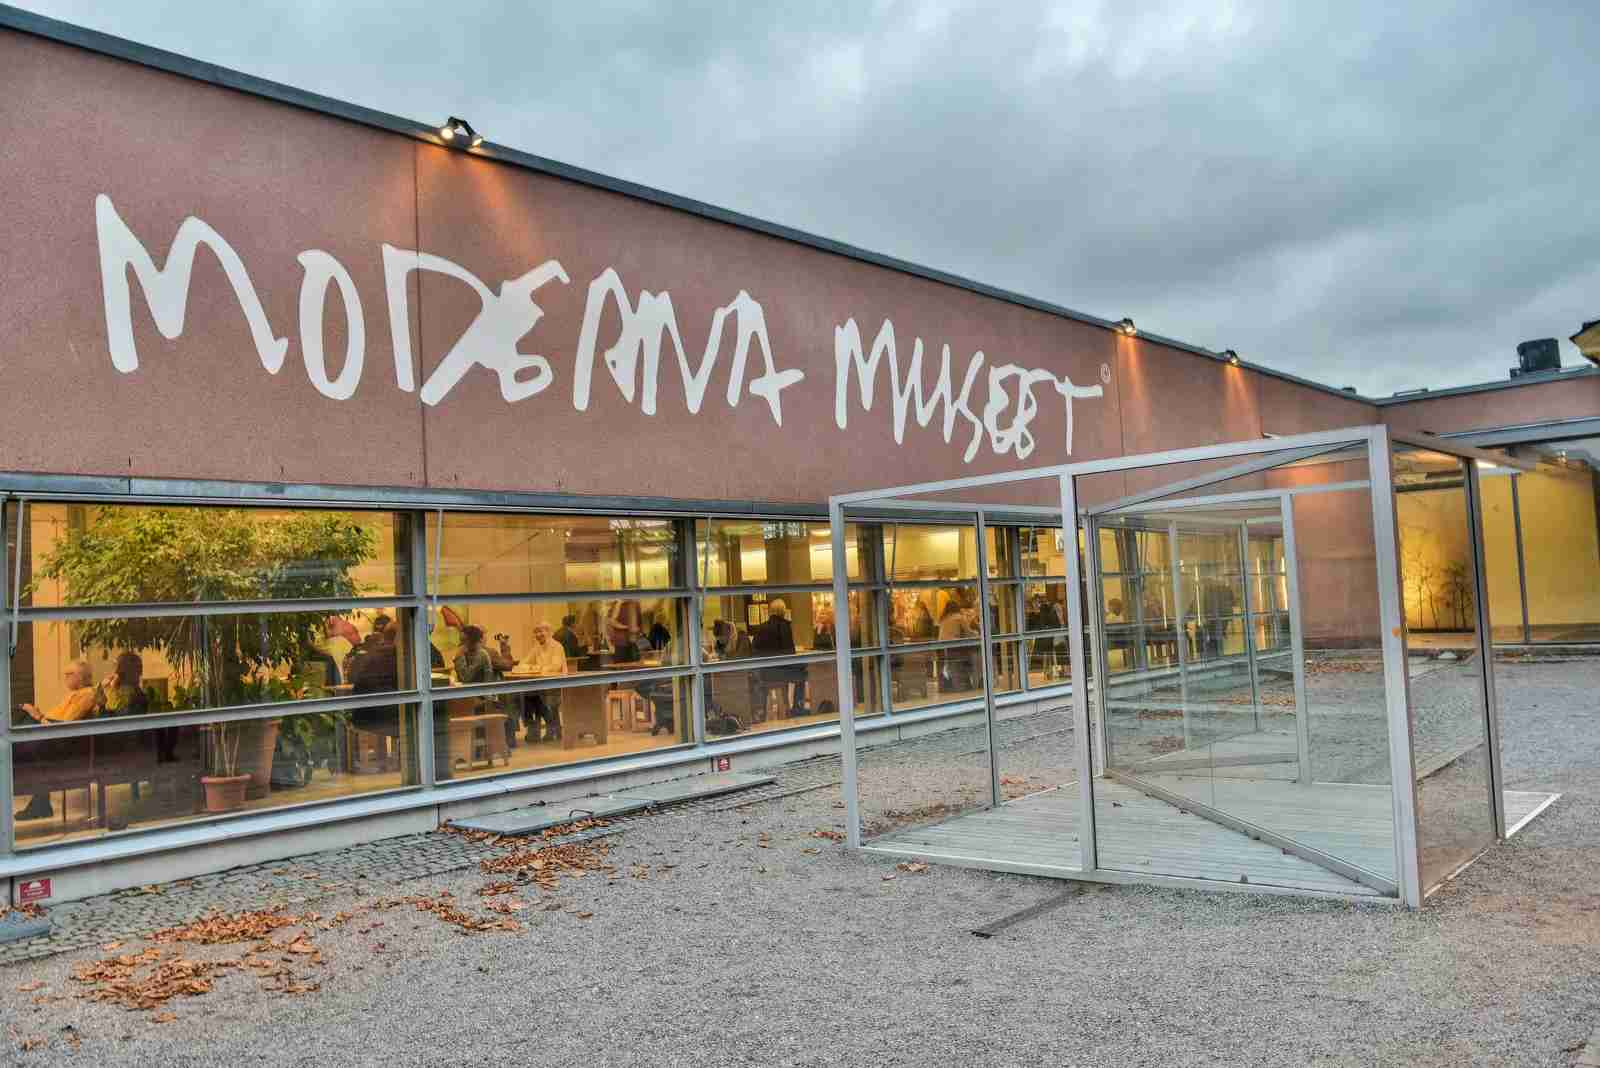 Moderna Museet in Stockholm. (Photo by AlizadaStudios/Getty Images)